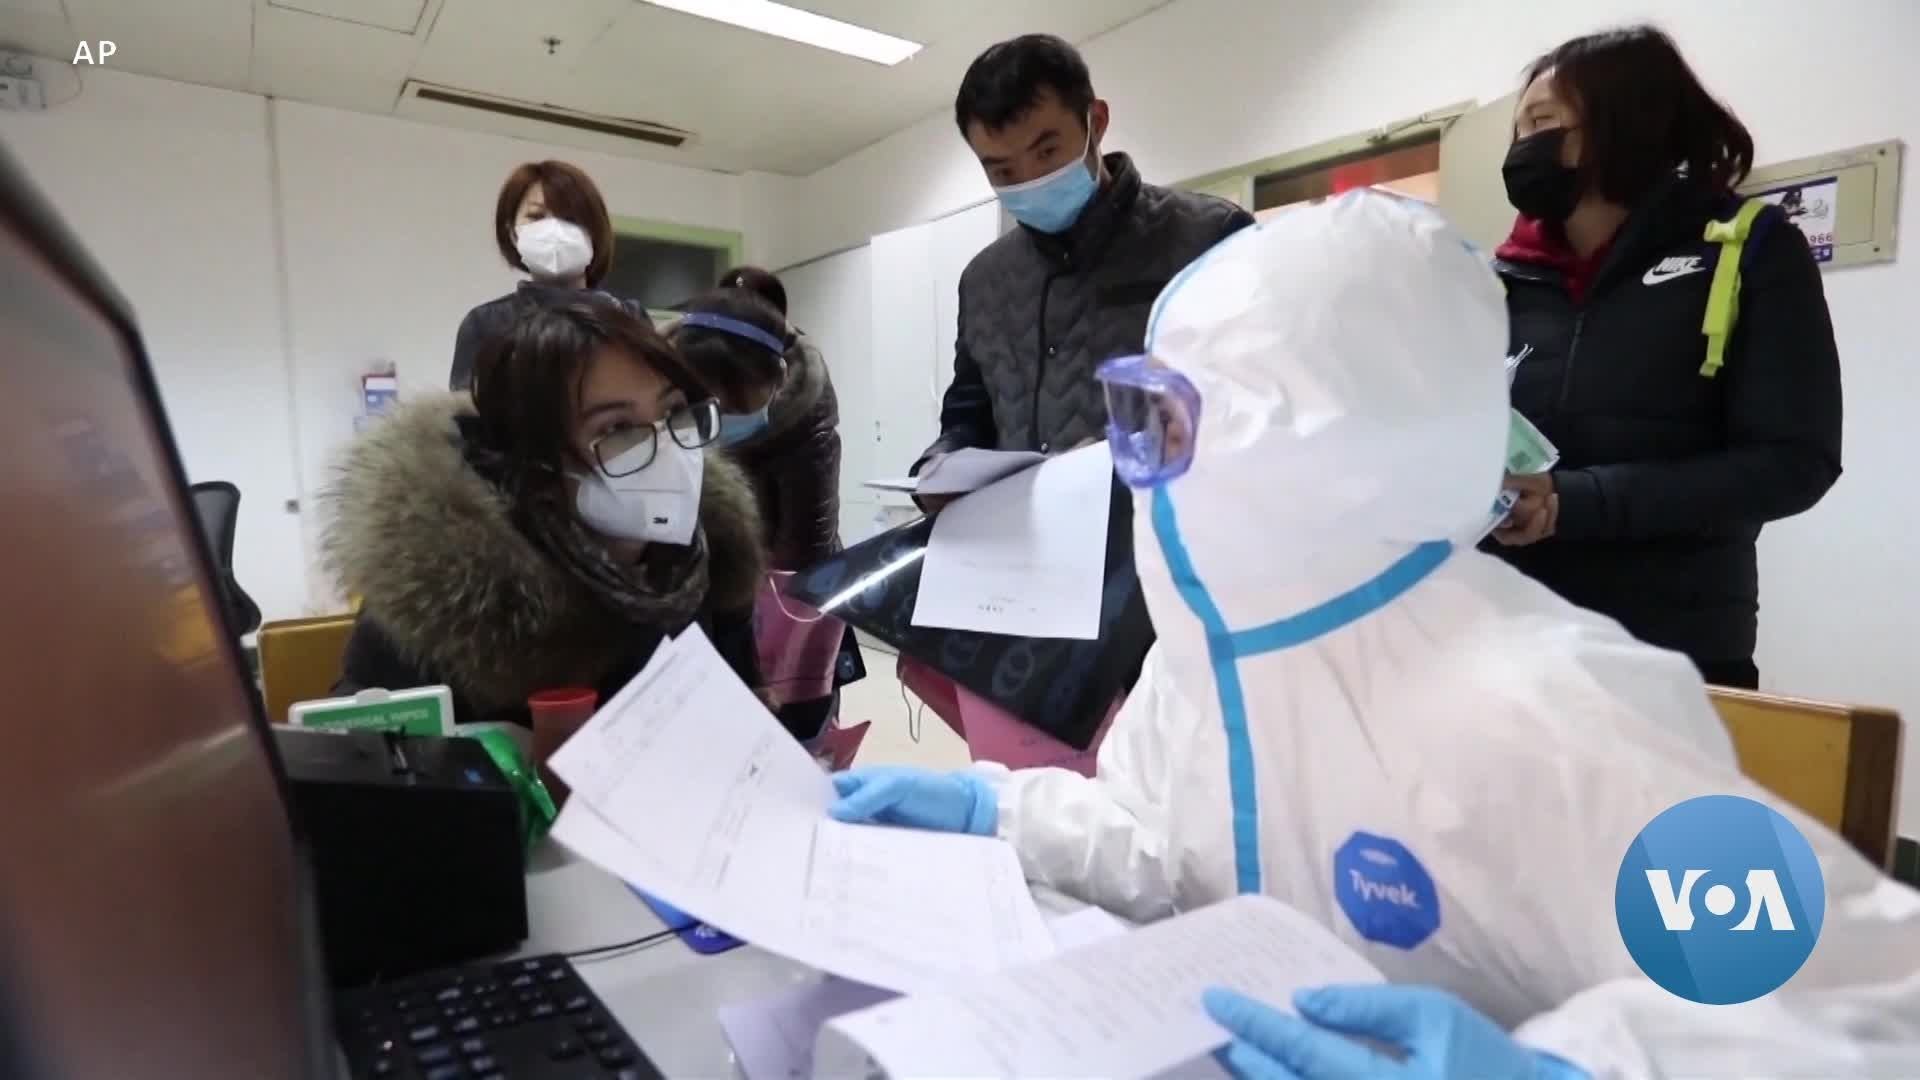 Coronavirus Demonstrates Need for Strong Health Systems